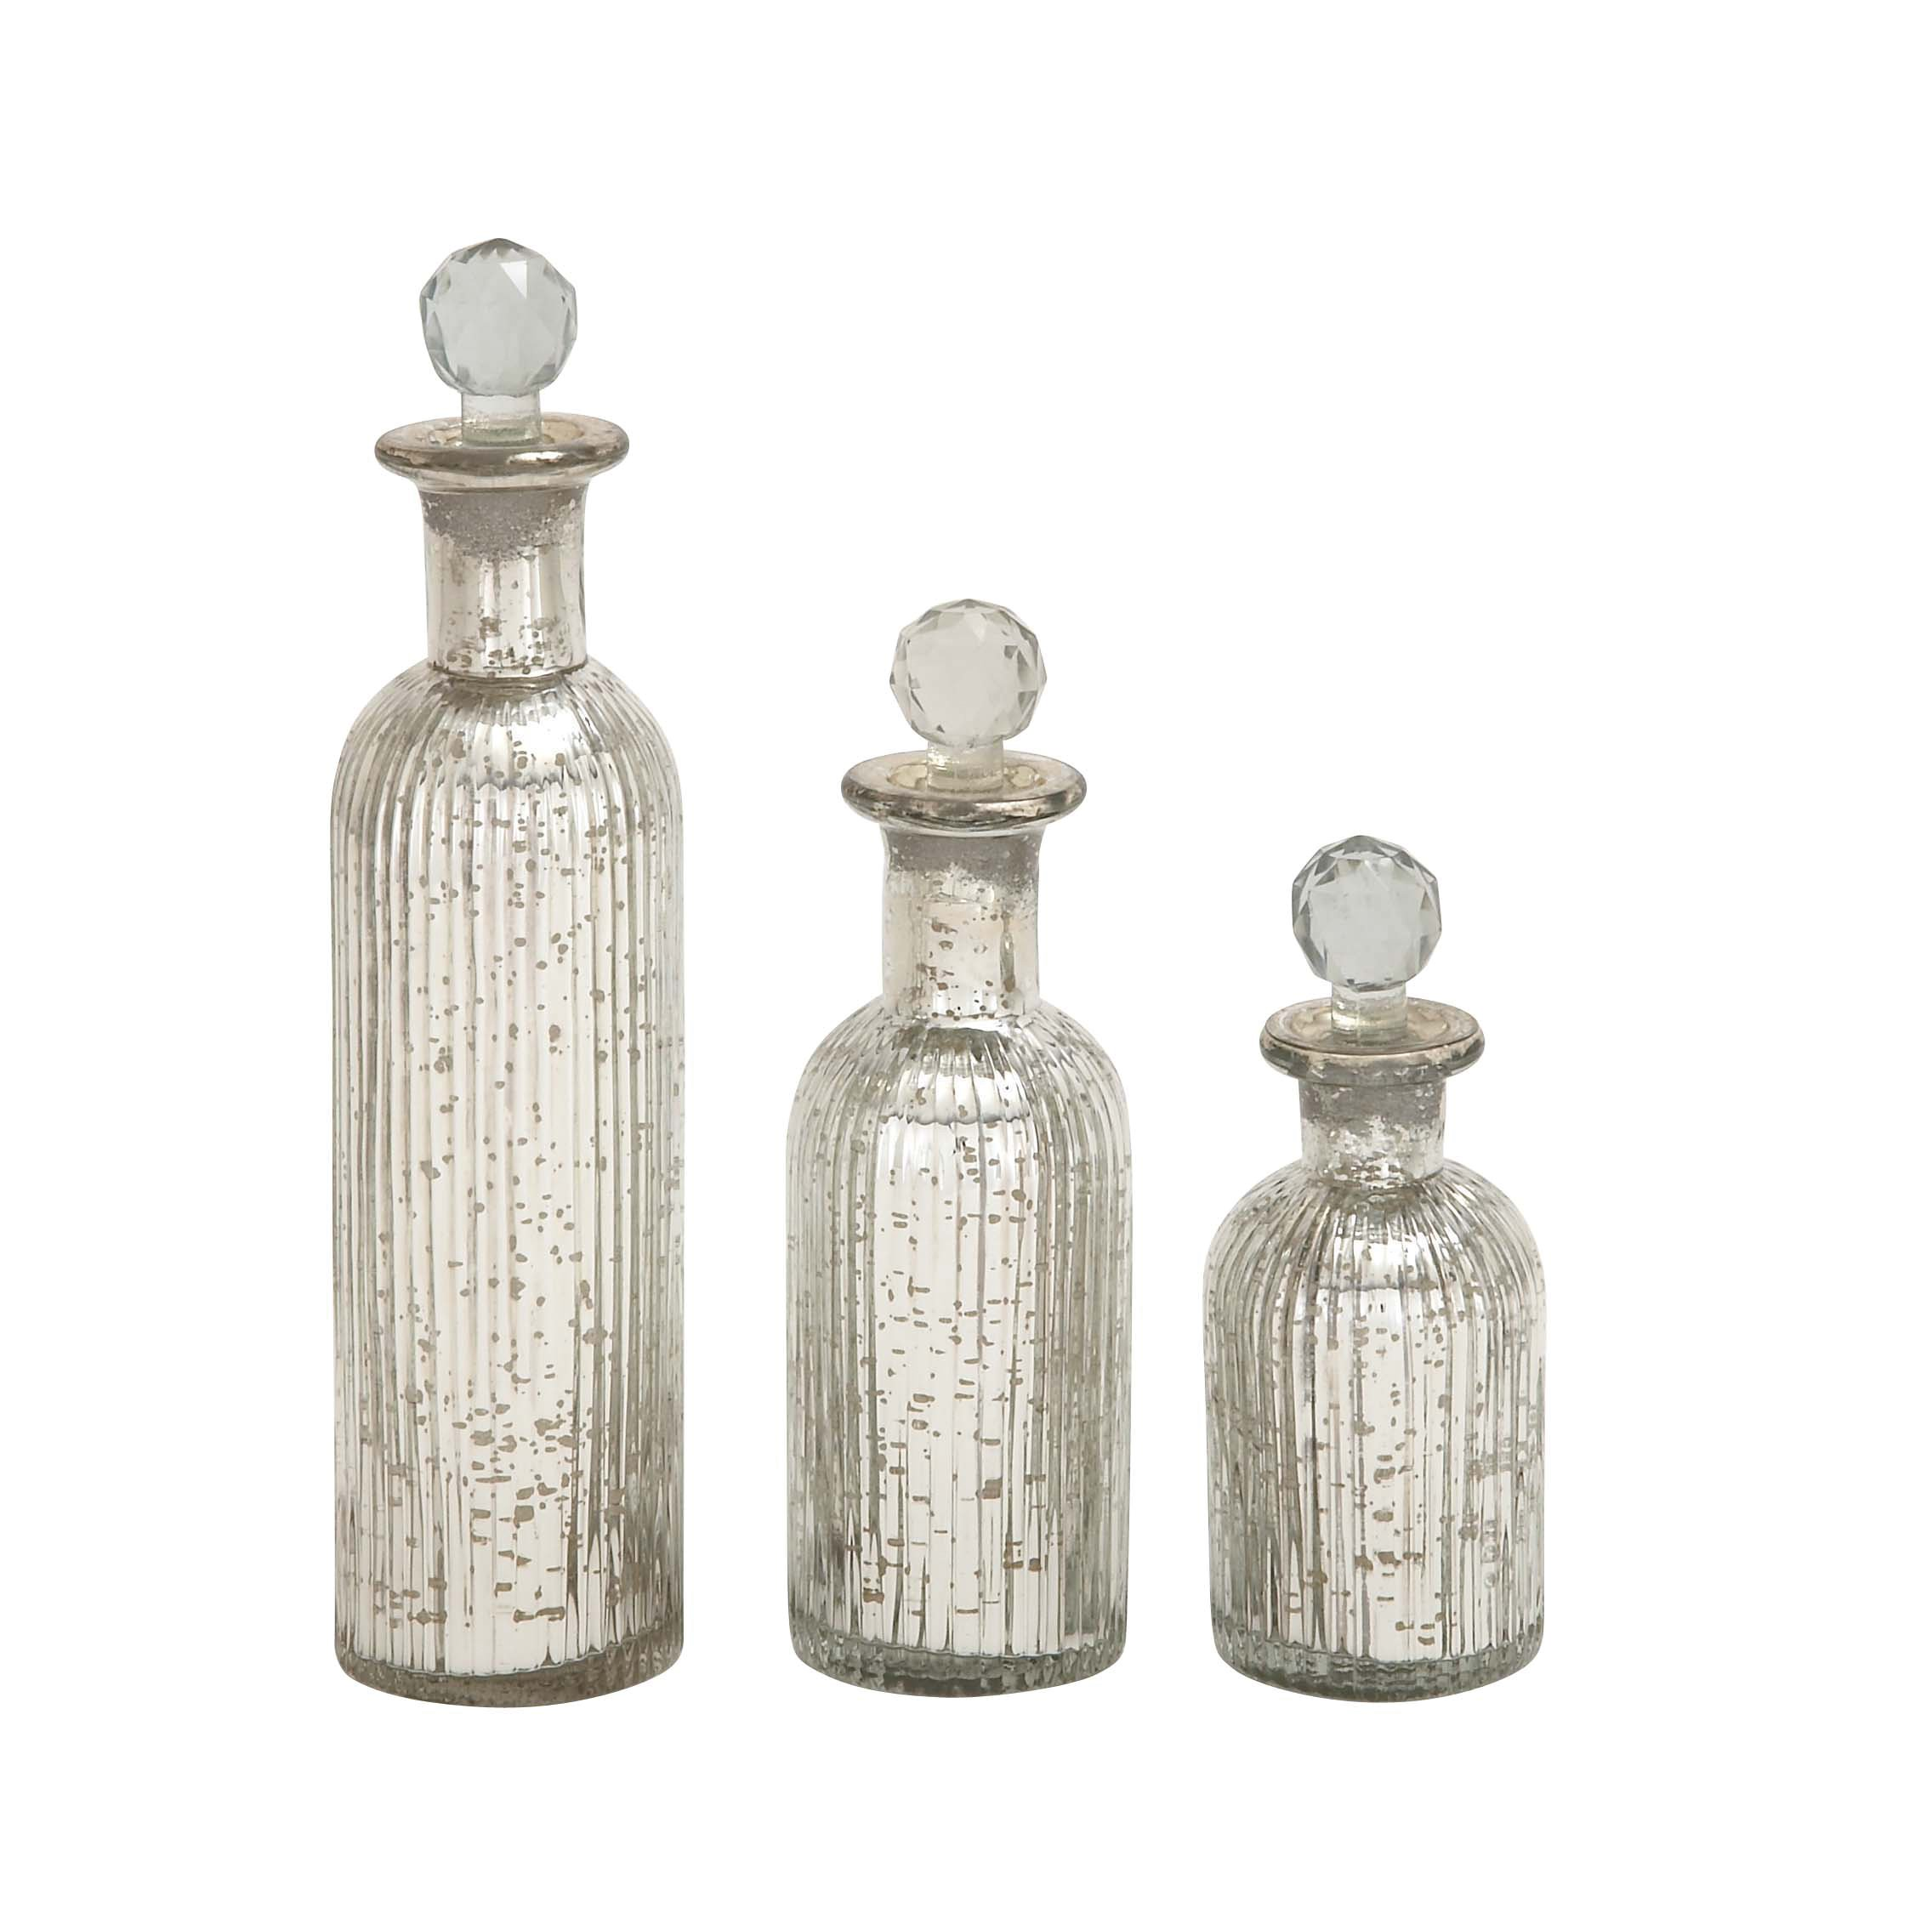 Deco 79 Classic Clear Glass Bottles with Decorative Stoppers, Set of Three - 7 inch, 9 inch, and 12 inch